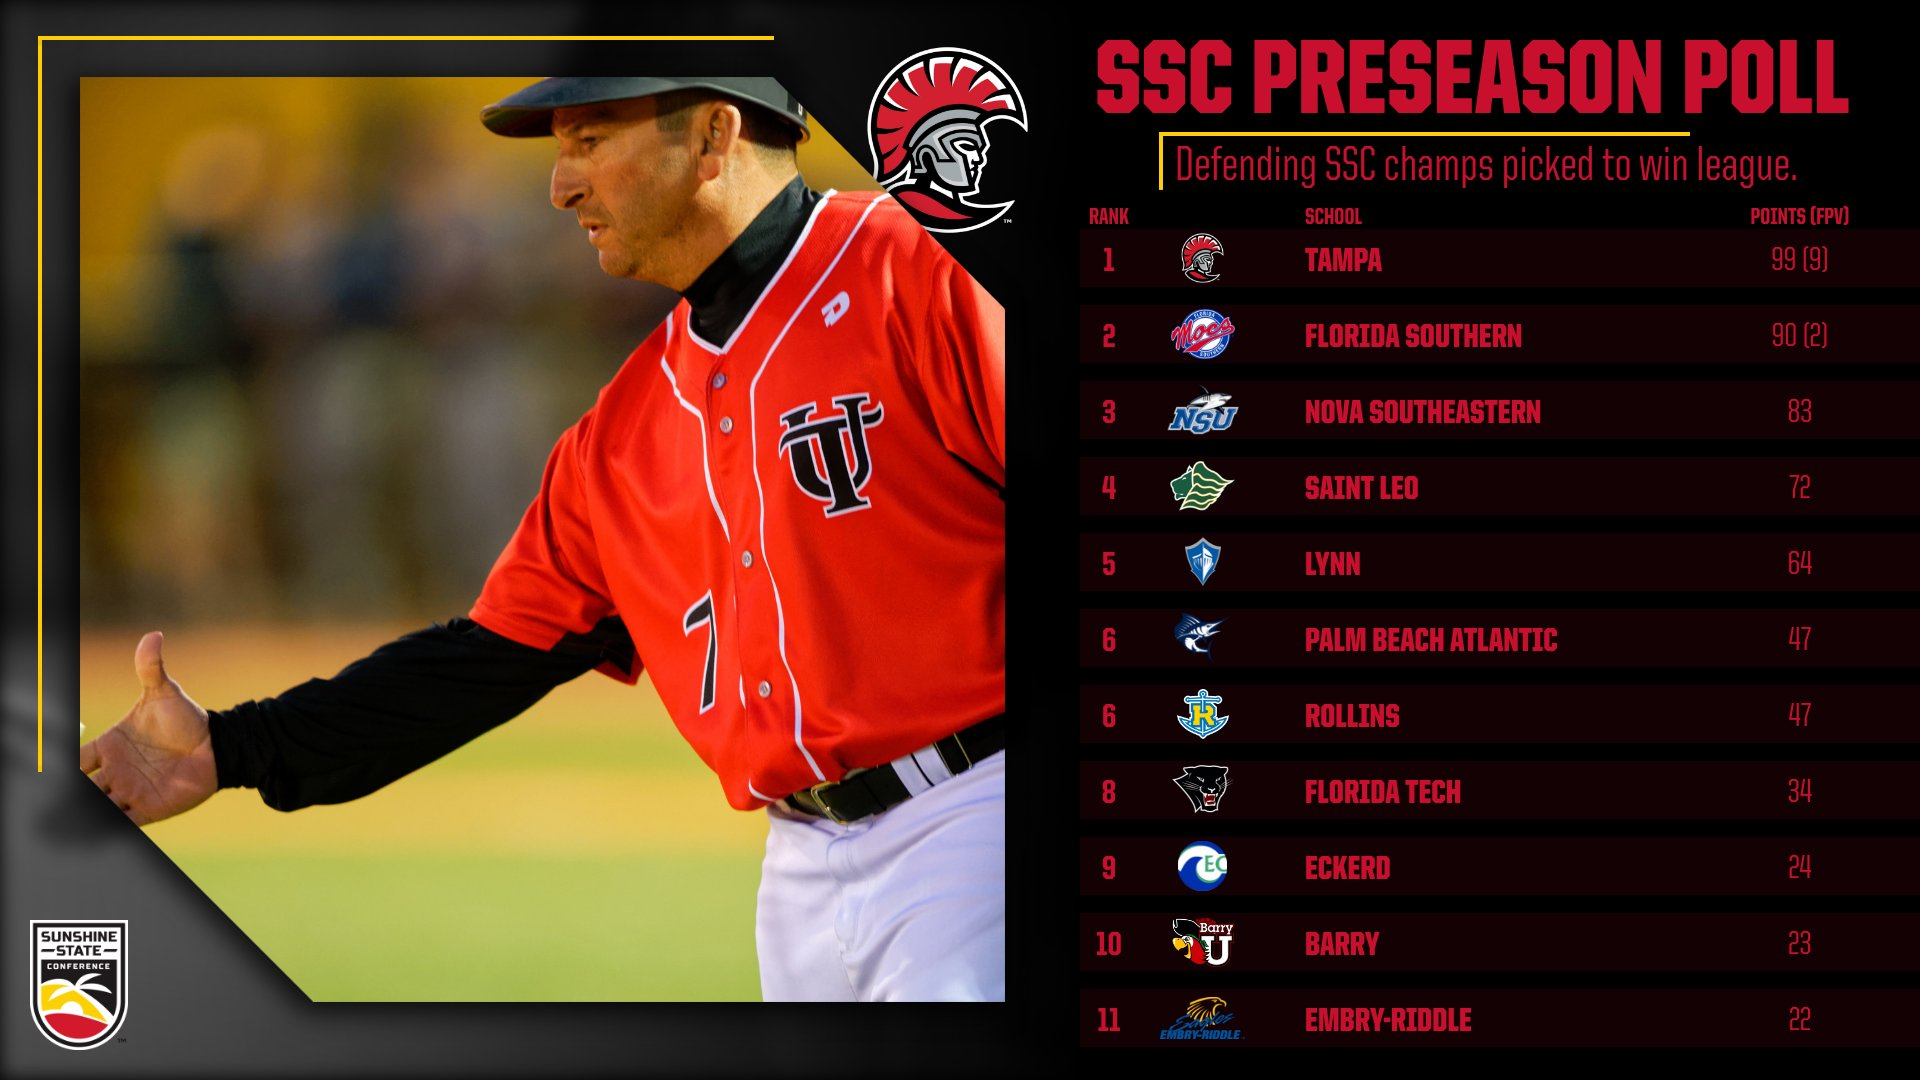 Tampa Baseball Selected as Preseason Favorite to Win SSC